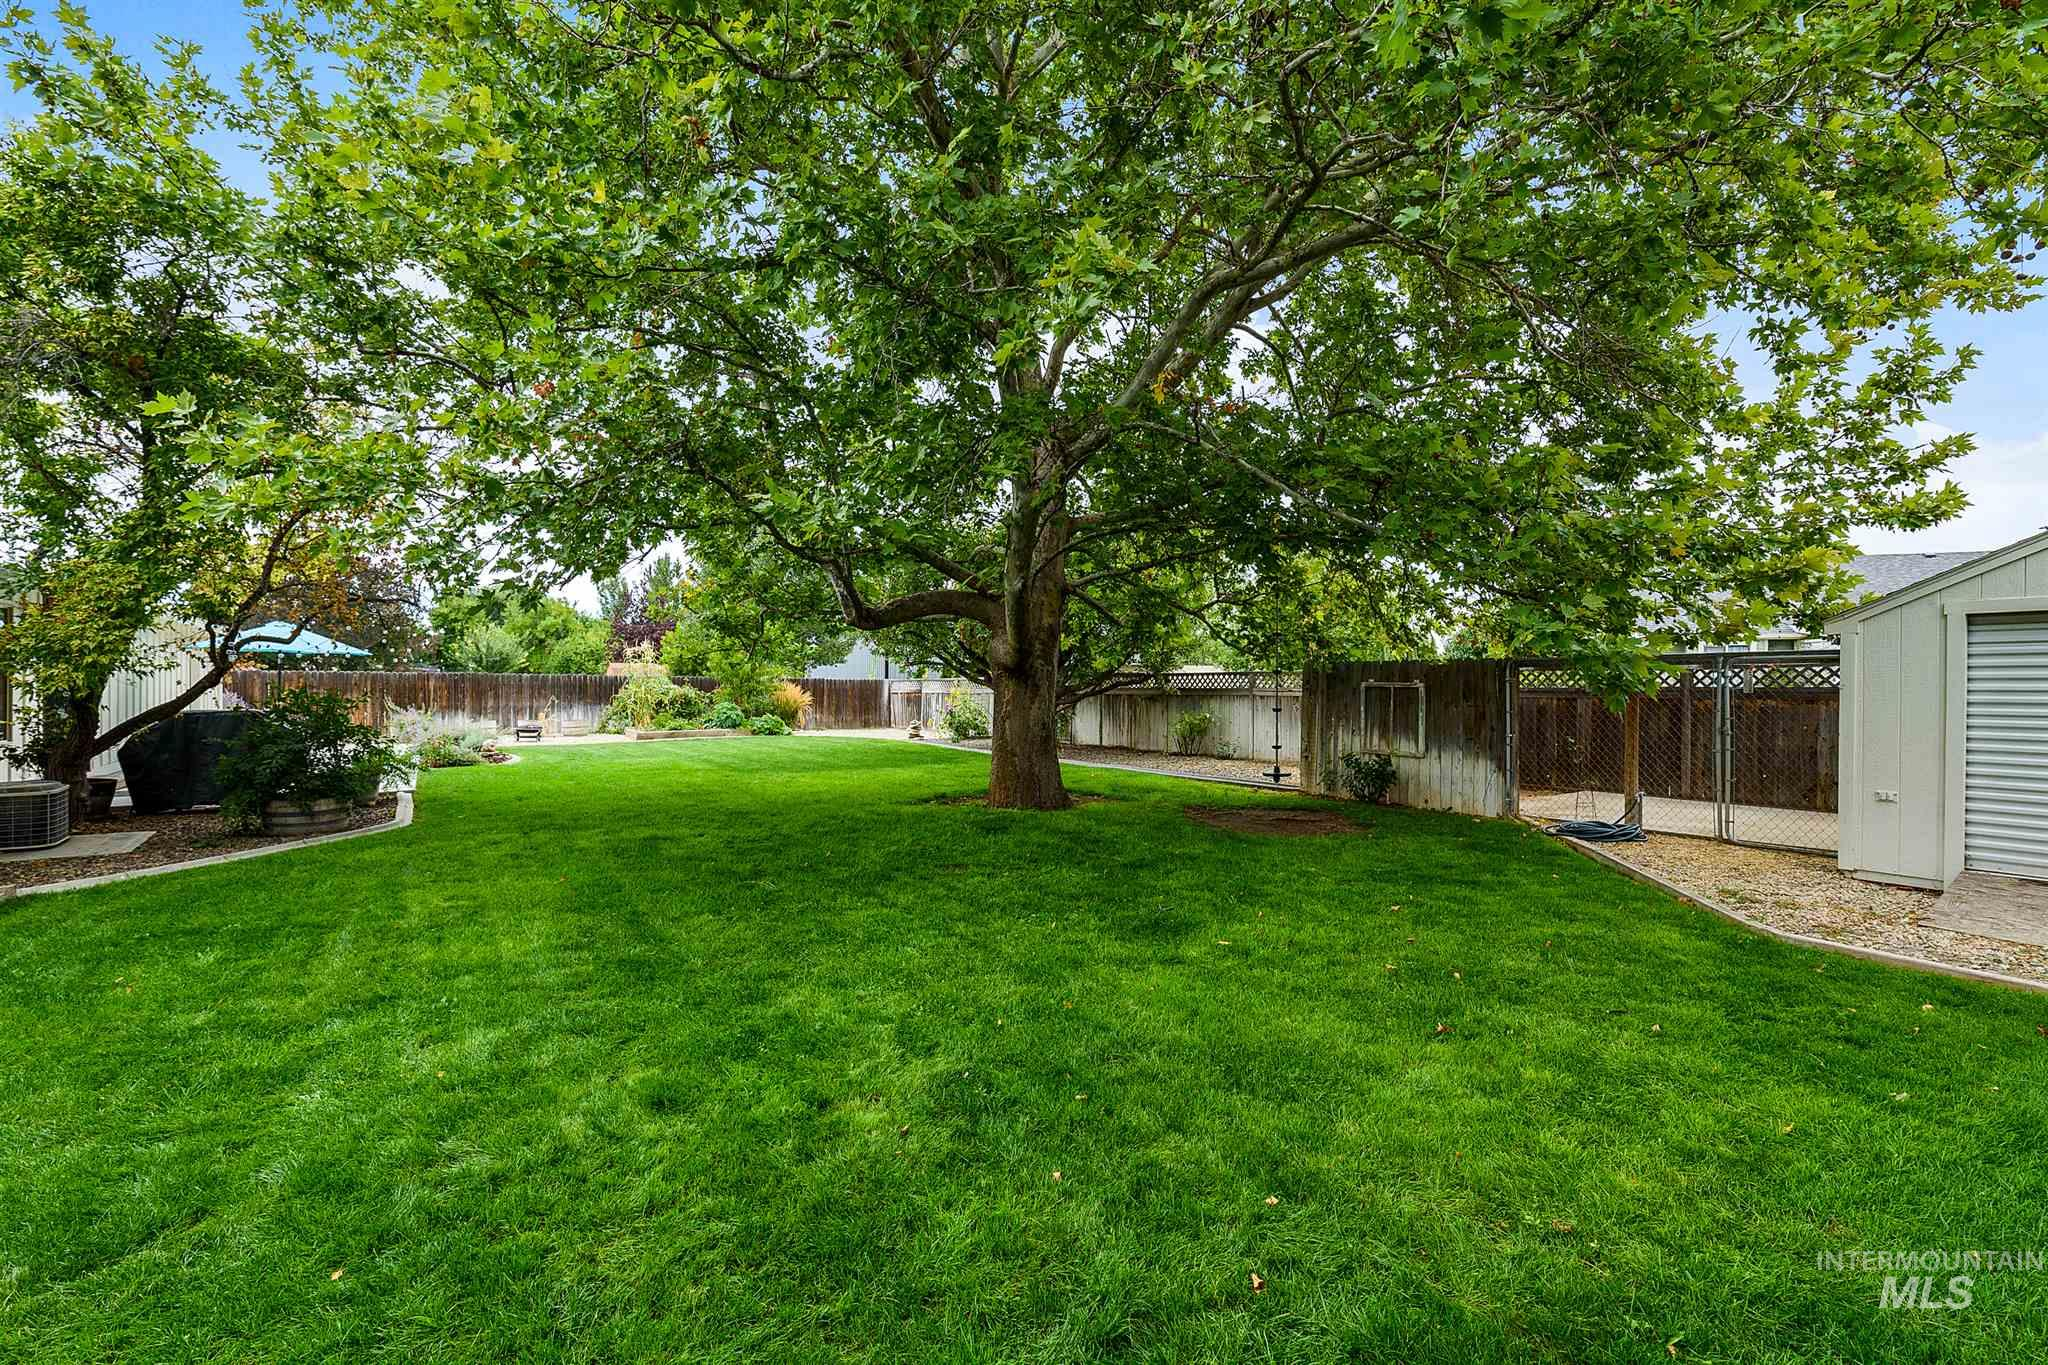 4112 Chicago Street, Nampa, Idaho 83686, 3 Bedrooms, 2 Bathrooms, Rental For Rent, Price $2,220, 98781698